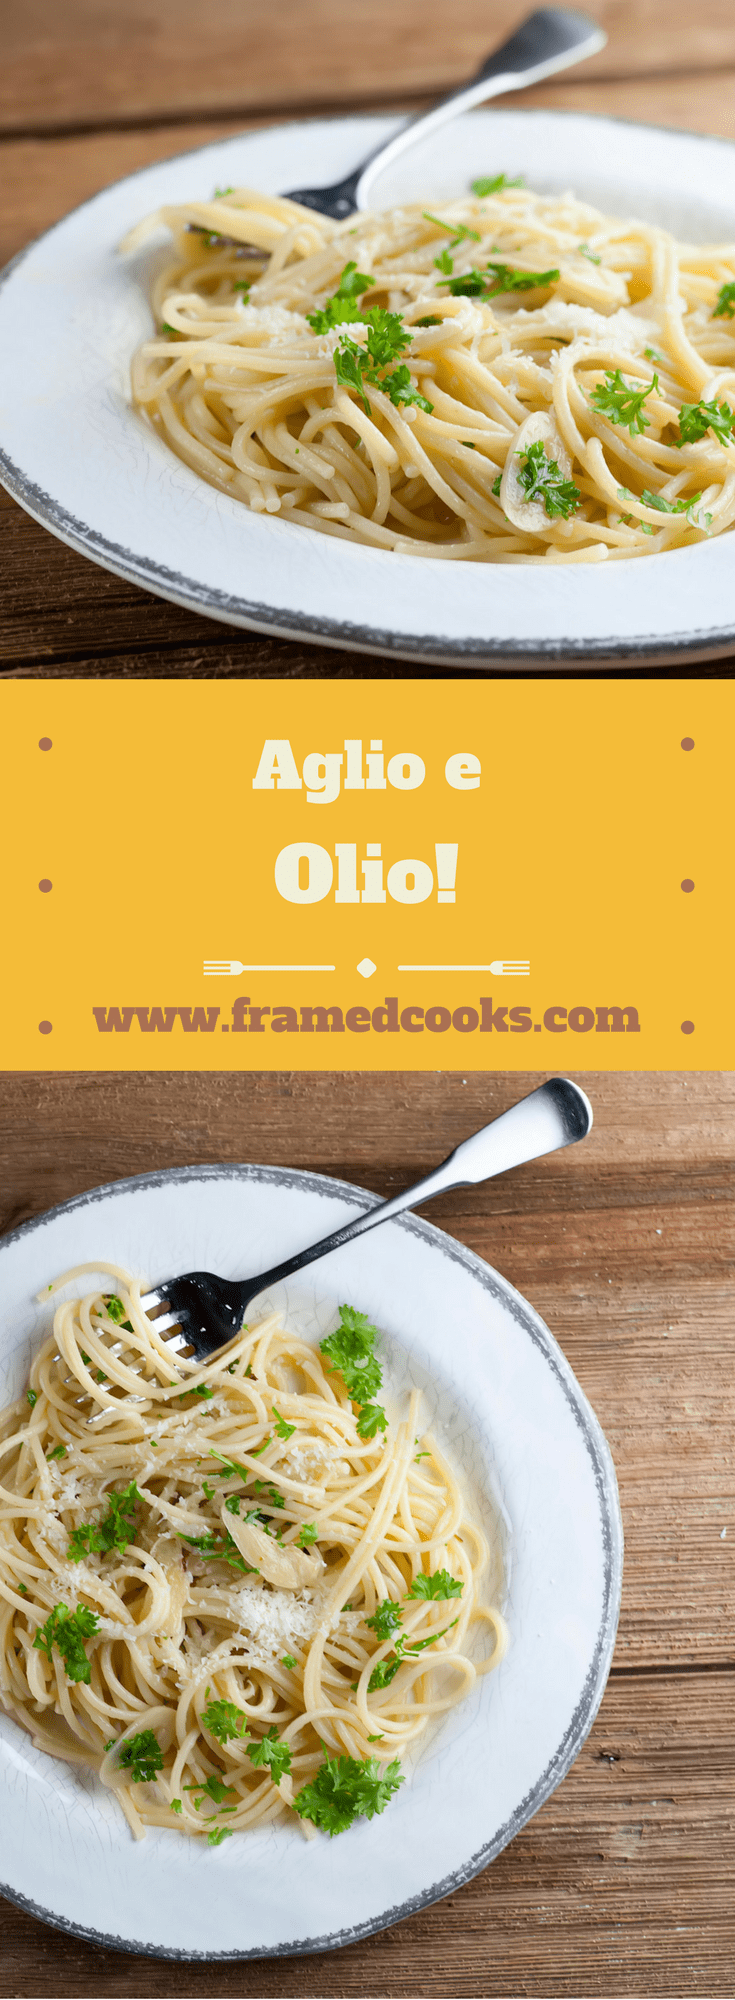 This easy recipe for aglio e olio, otherwise known as pasta with lots of garlic and olive oil, is the perfect supper for busy nights!